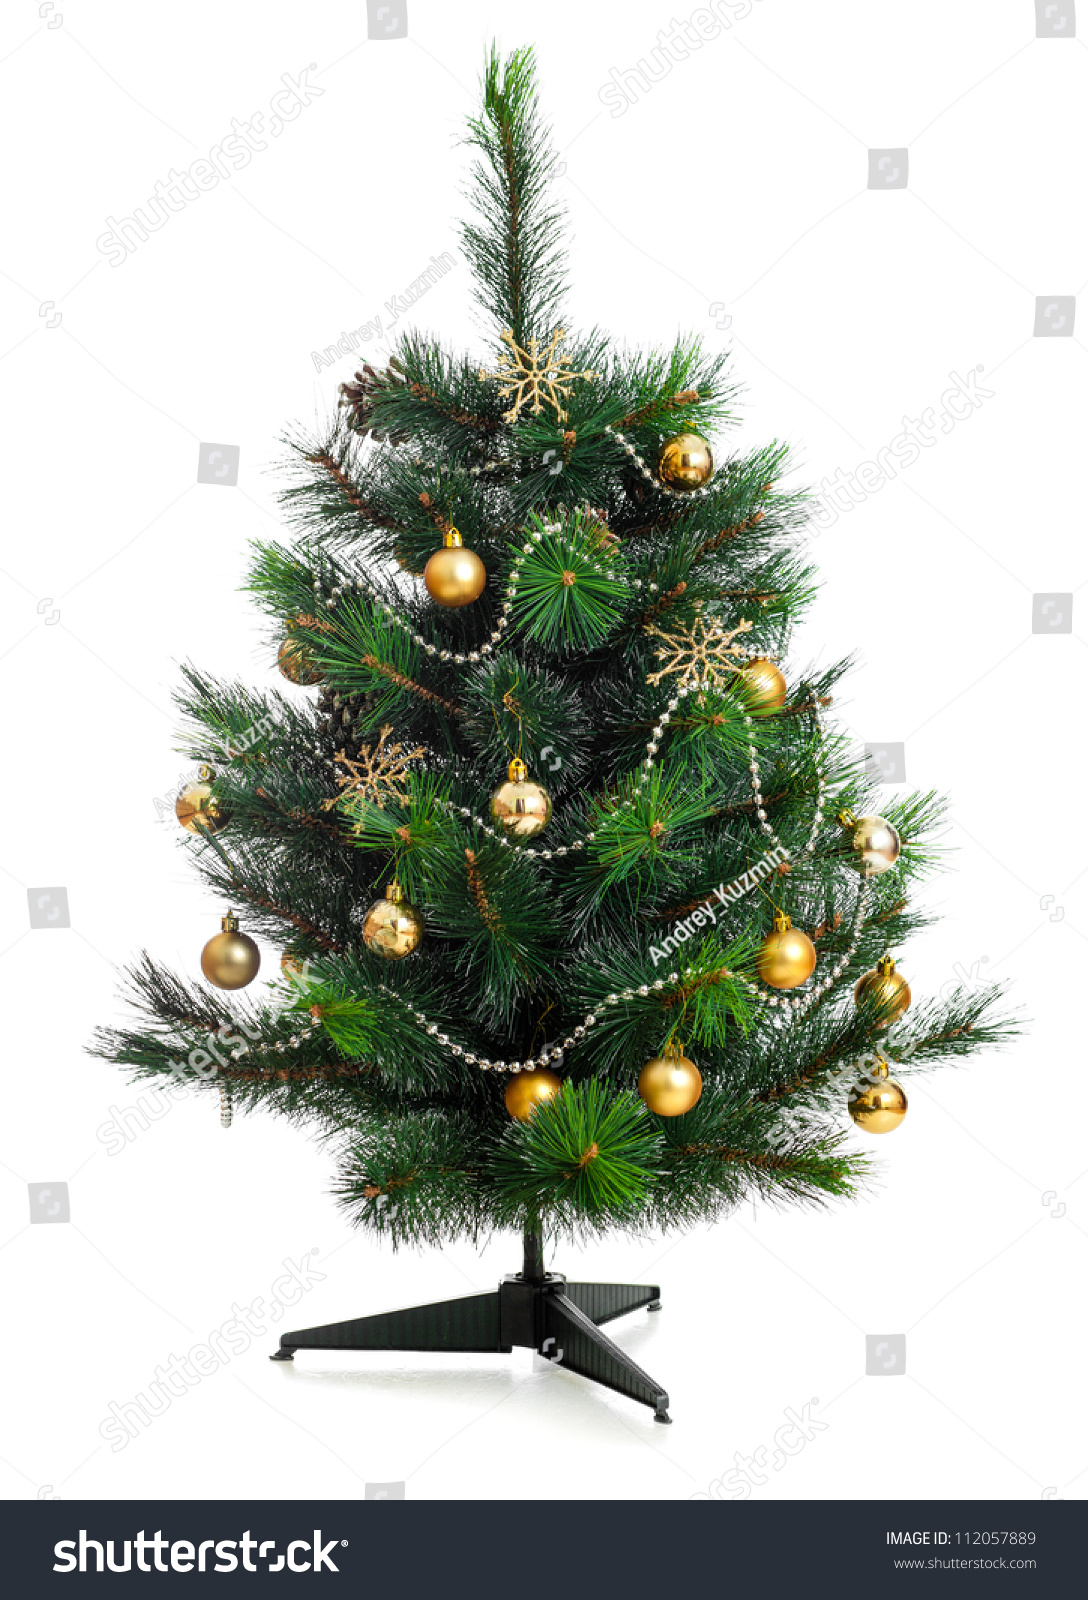 small decorated christmas tree isolated on white - Small Decorated Christmas Trees